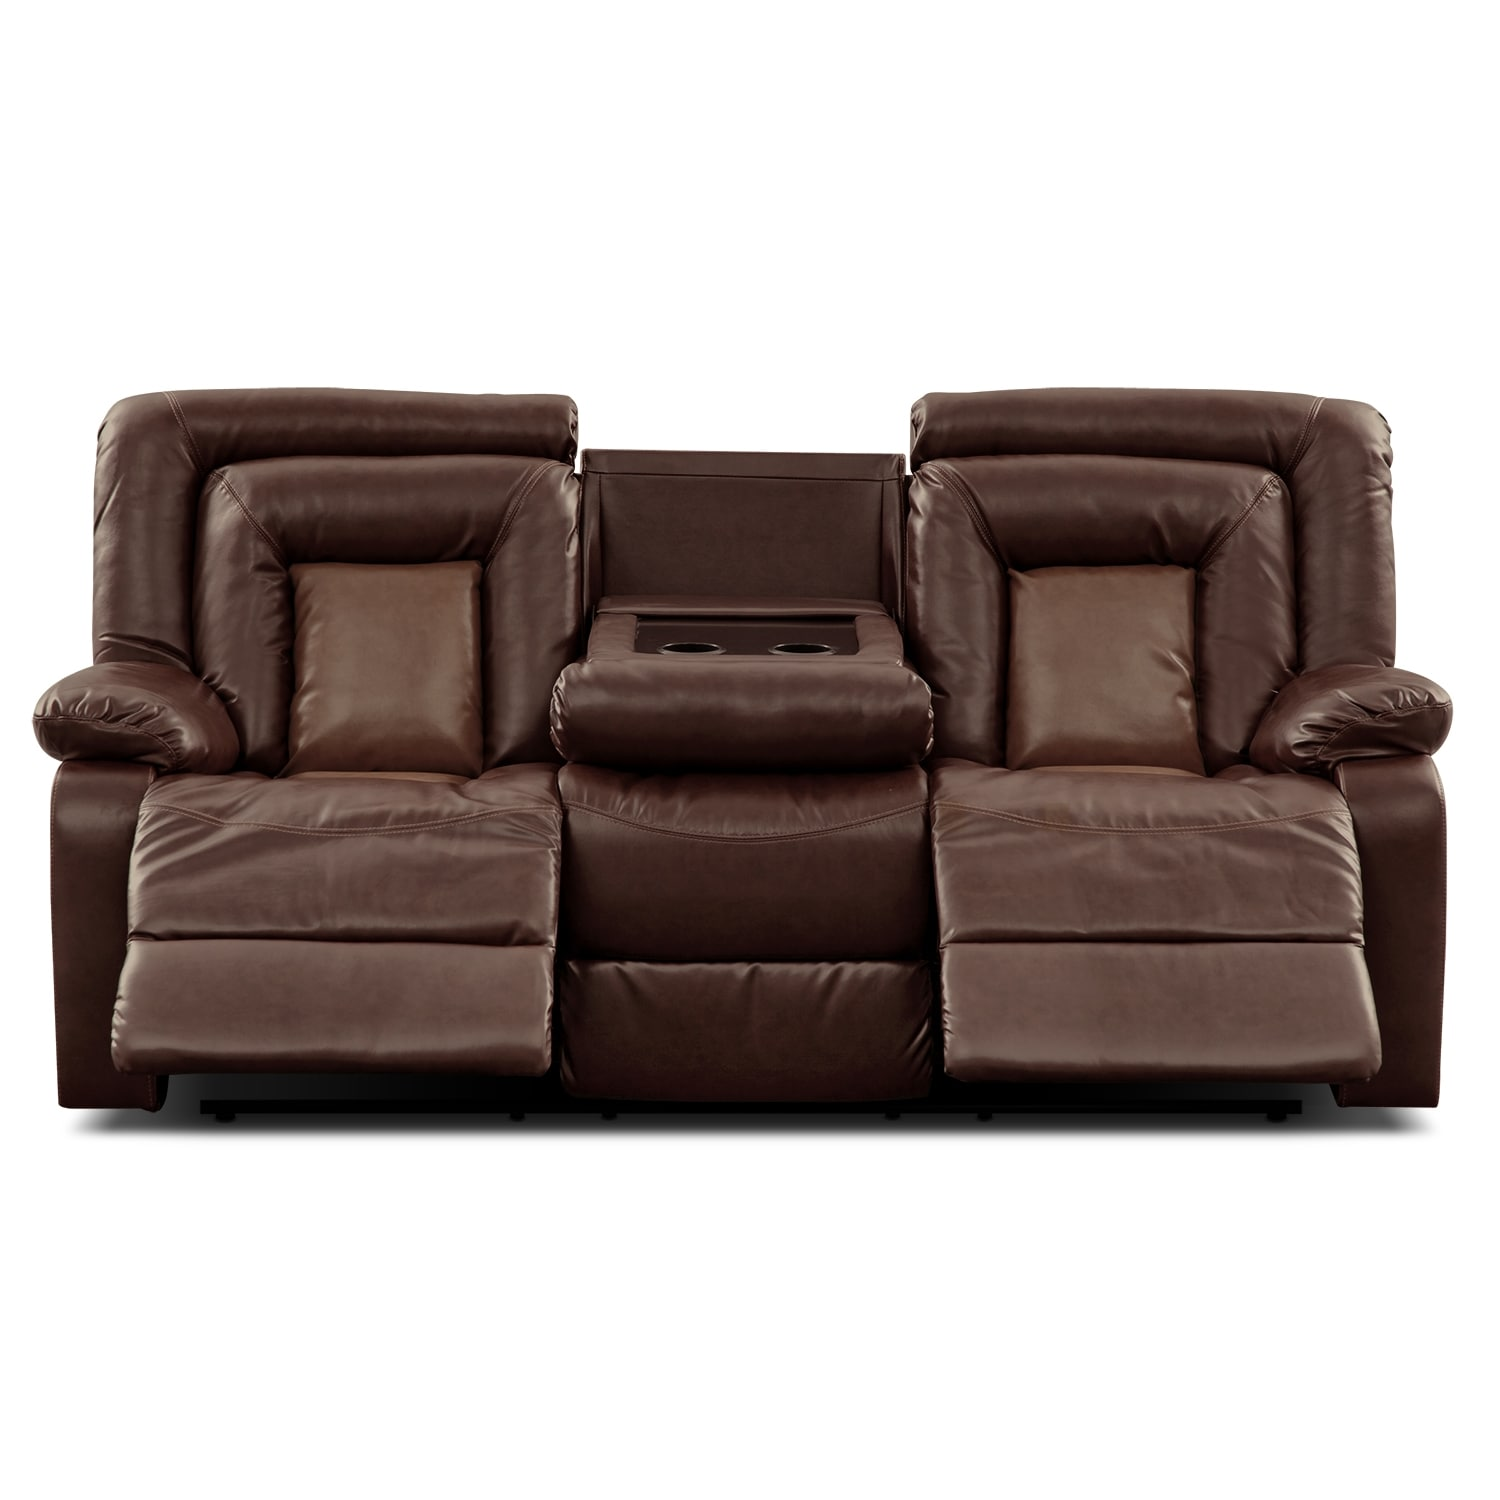 Ketchum Reclining Sofa Furniturecom : 291189 from furniture.com size 1500 x 1500 jpeg 151kB